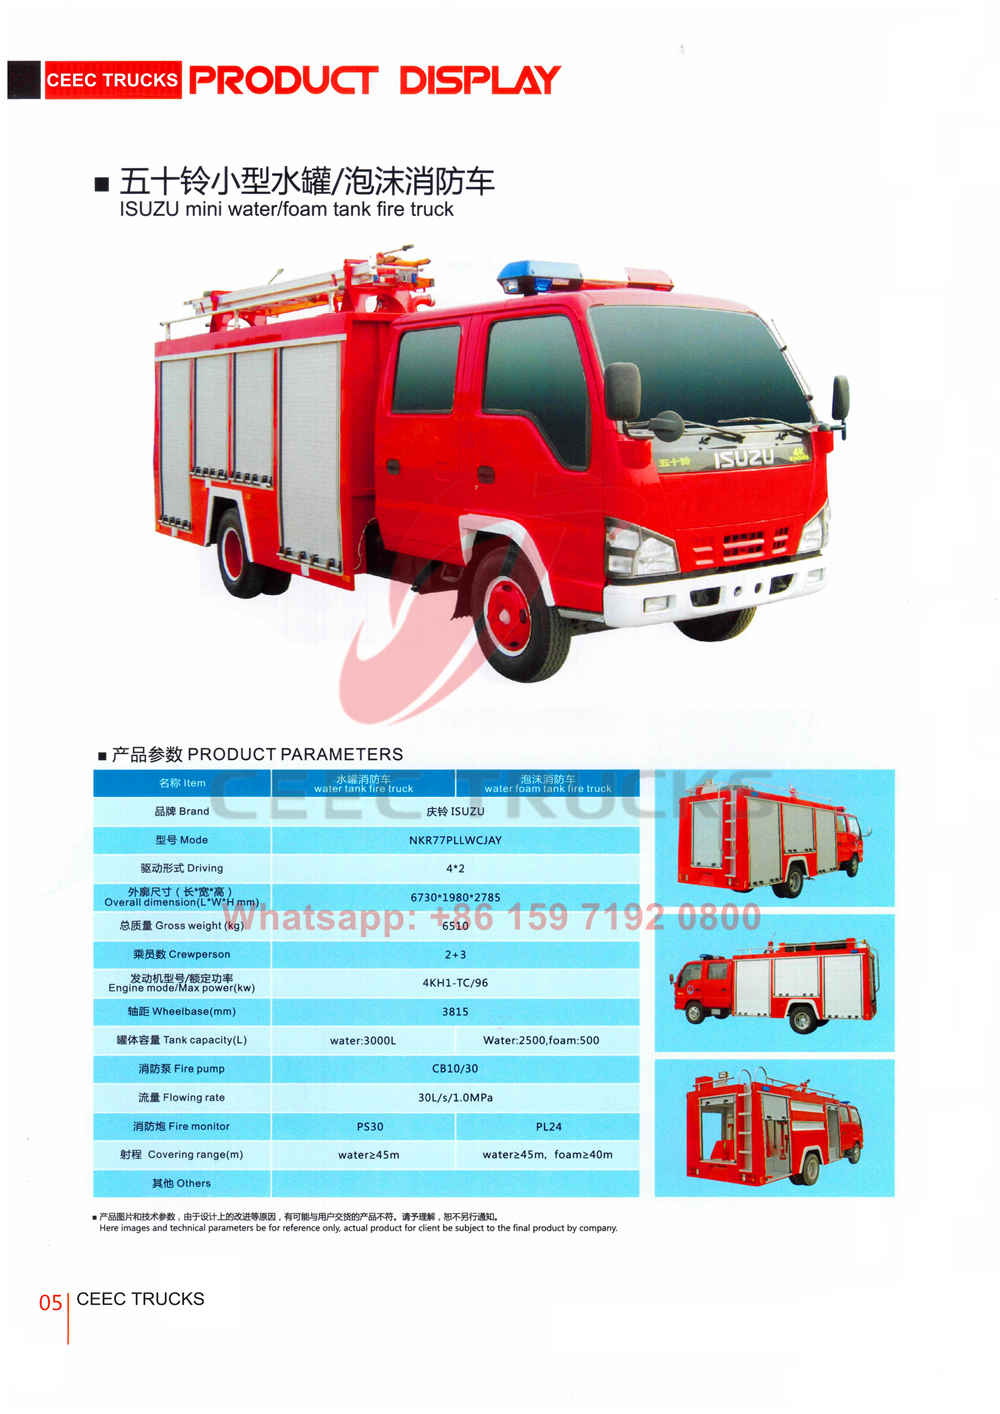 CEEC firefighting truck catalogue